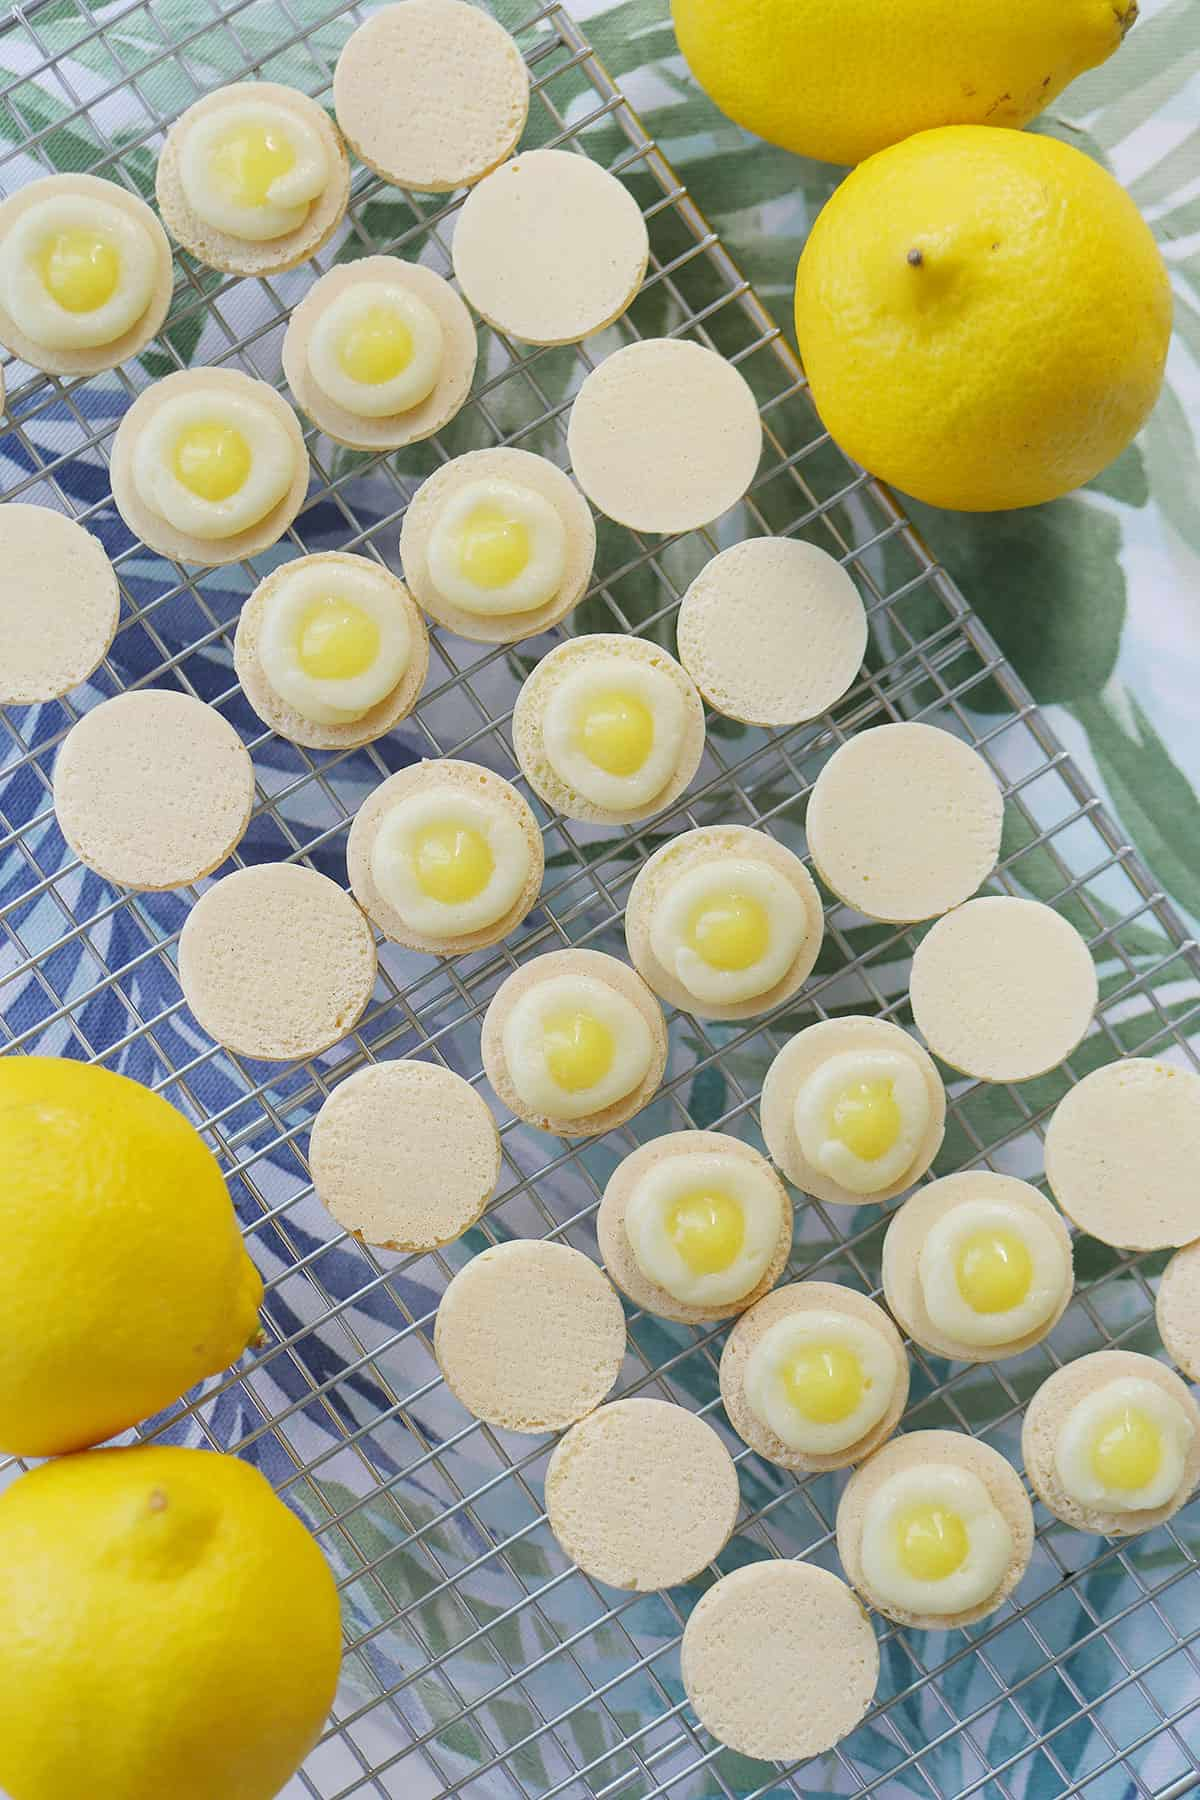 Macaron shells on a cooling rack showing a ring of buttercream with a dollop of lemon curd in the center.